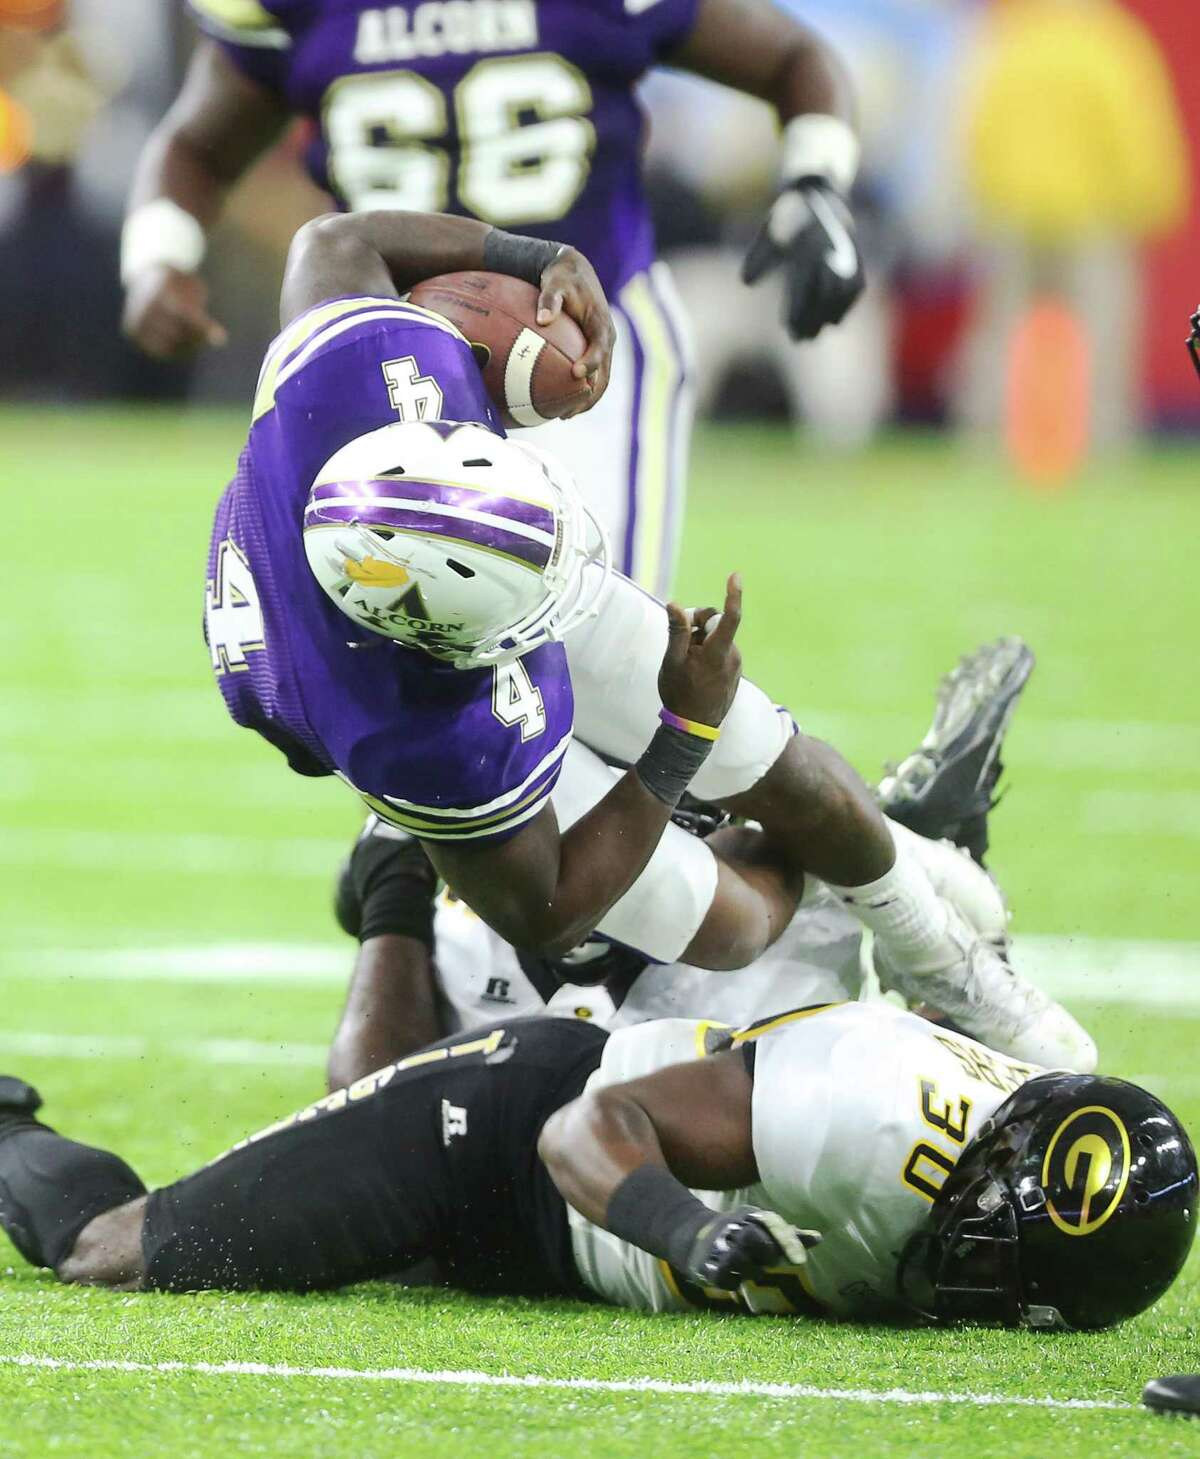 Alcorn State University running back Silas Spearman (4) leaps in the air to dodge the tackle from Grambling State University's Derrick Dixon (30) during the first half of the Southwestern Athletic Conference Championship Game at NRG Stadium Saturday, Dec. 3, 2016, in Houston.